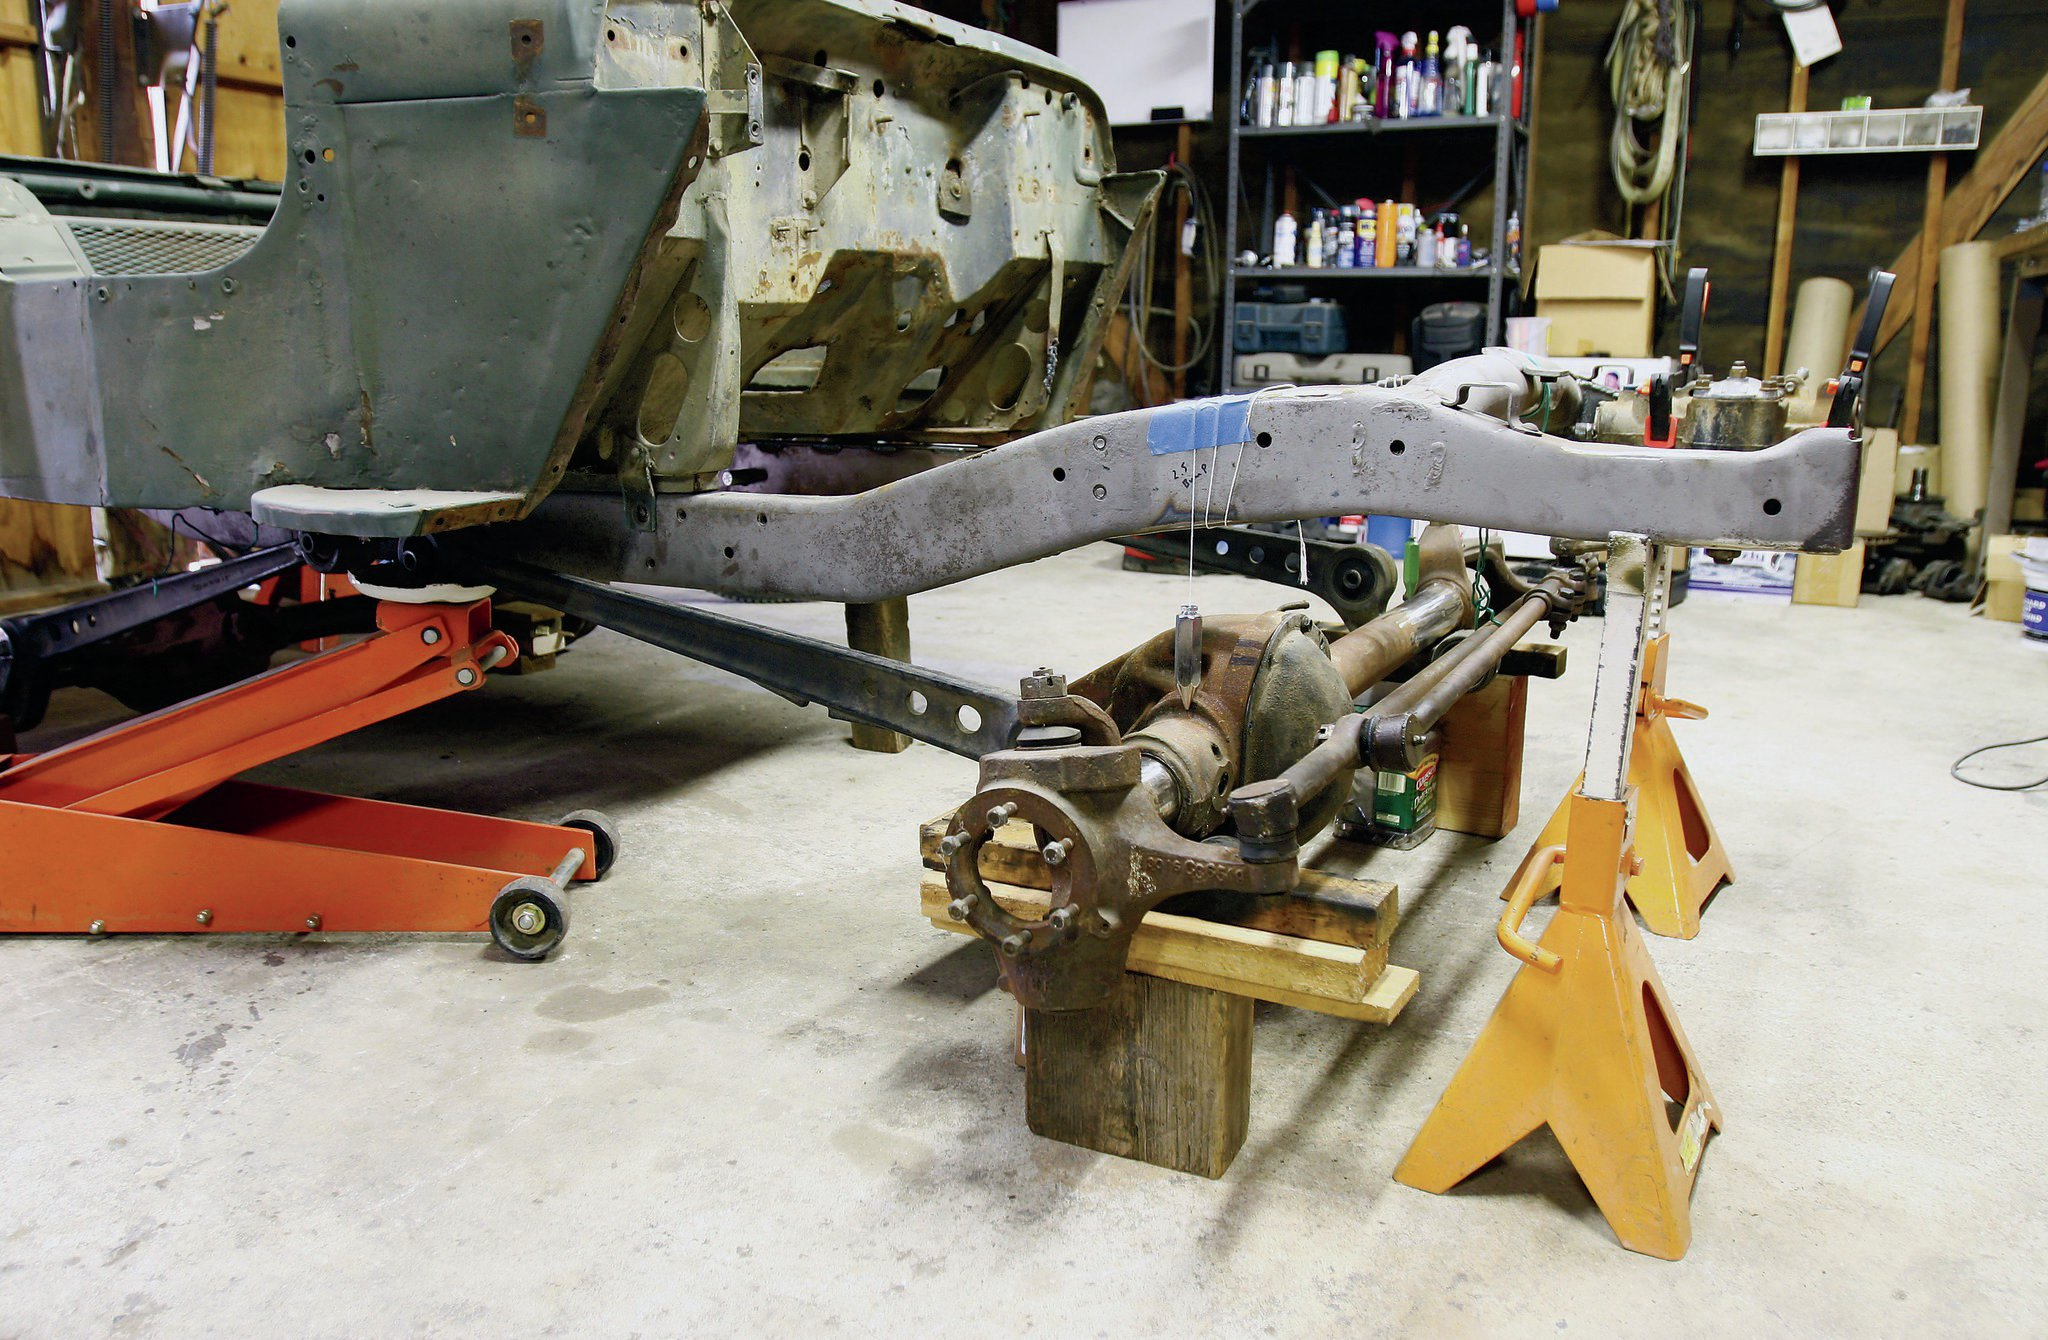 In the next instalment of our Garage Project GPW, we'll attack the suspension. Here's a sneak peek of what we are up to.